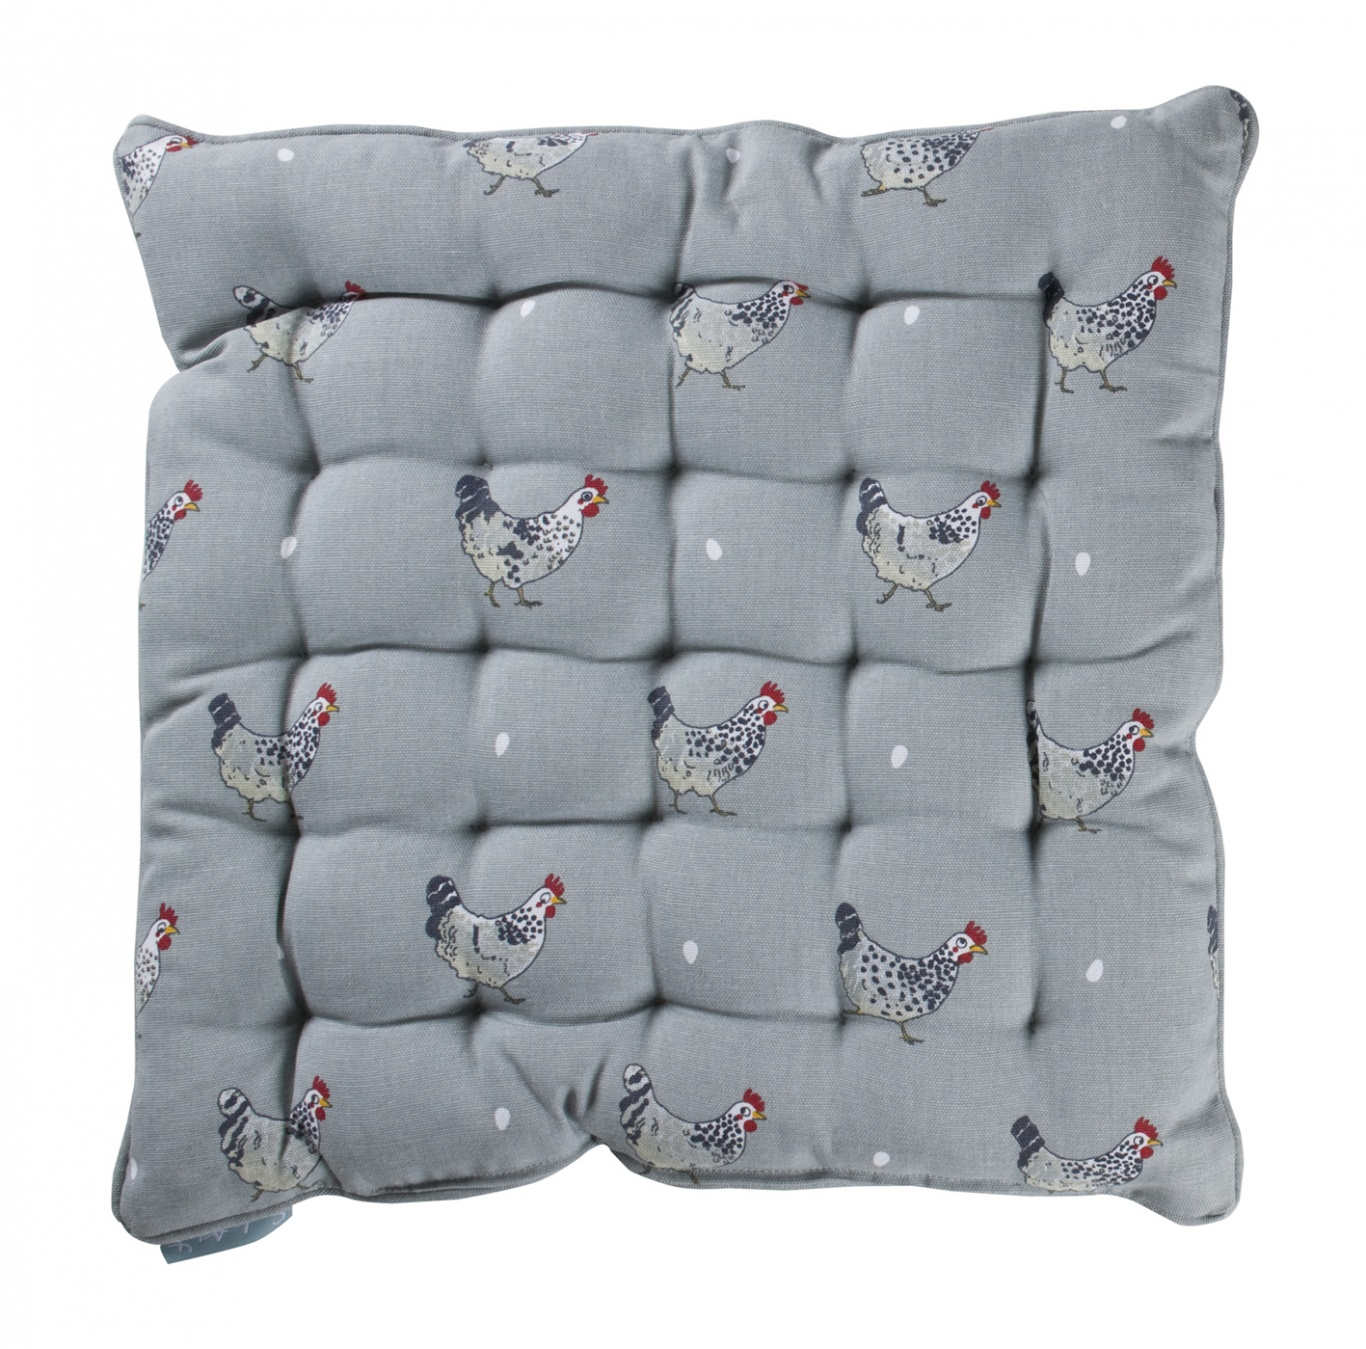 Image of Sophie Allport Chickens Seat Pad